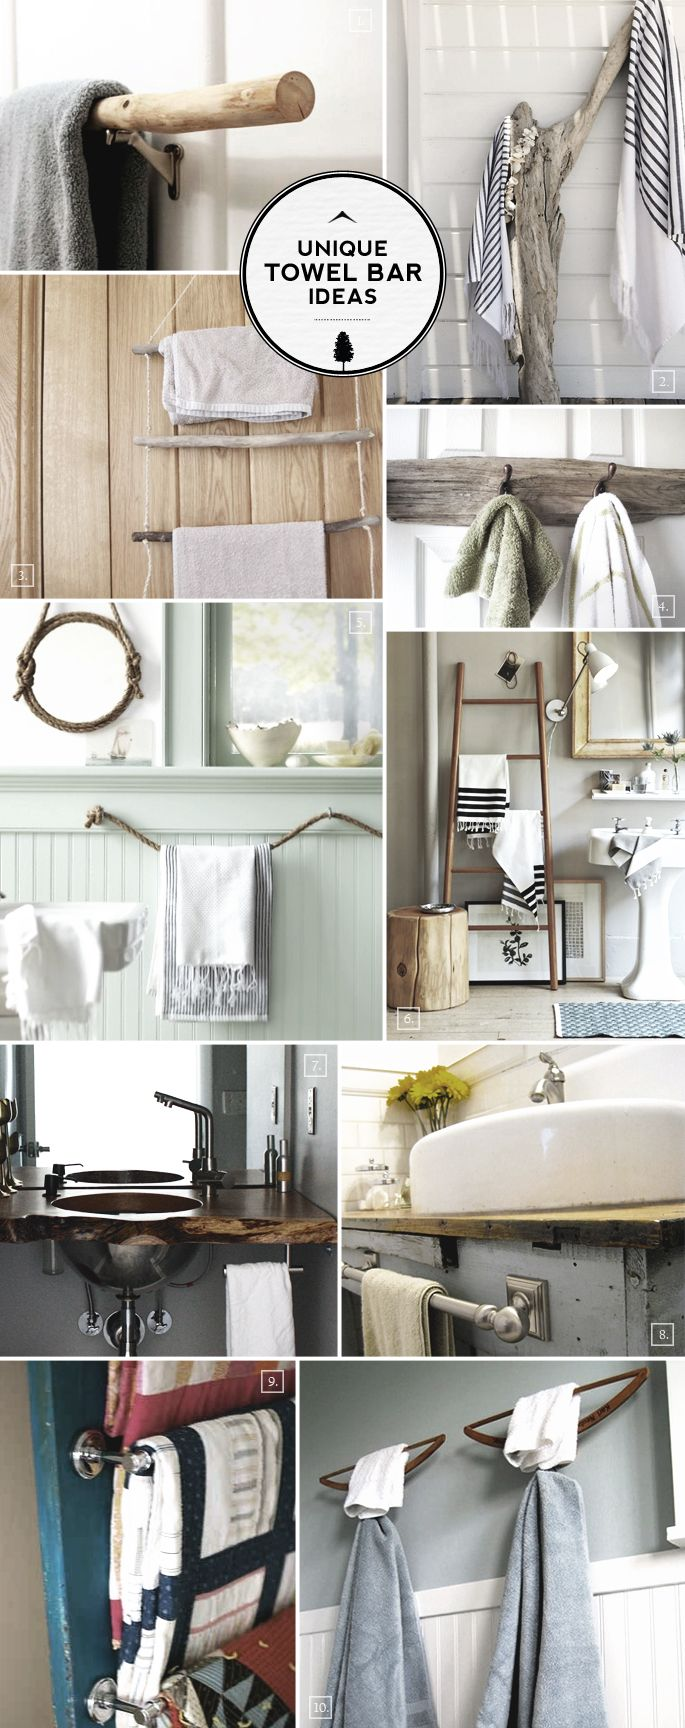 Bathroom Towel Bar Ideas Alluring Best 25 Towel Bars Ideas On Pinterest  Burger Rack Towel Bars Inspiration Design